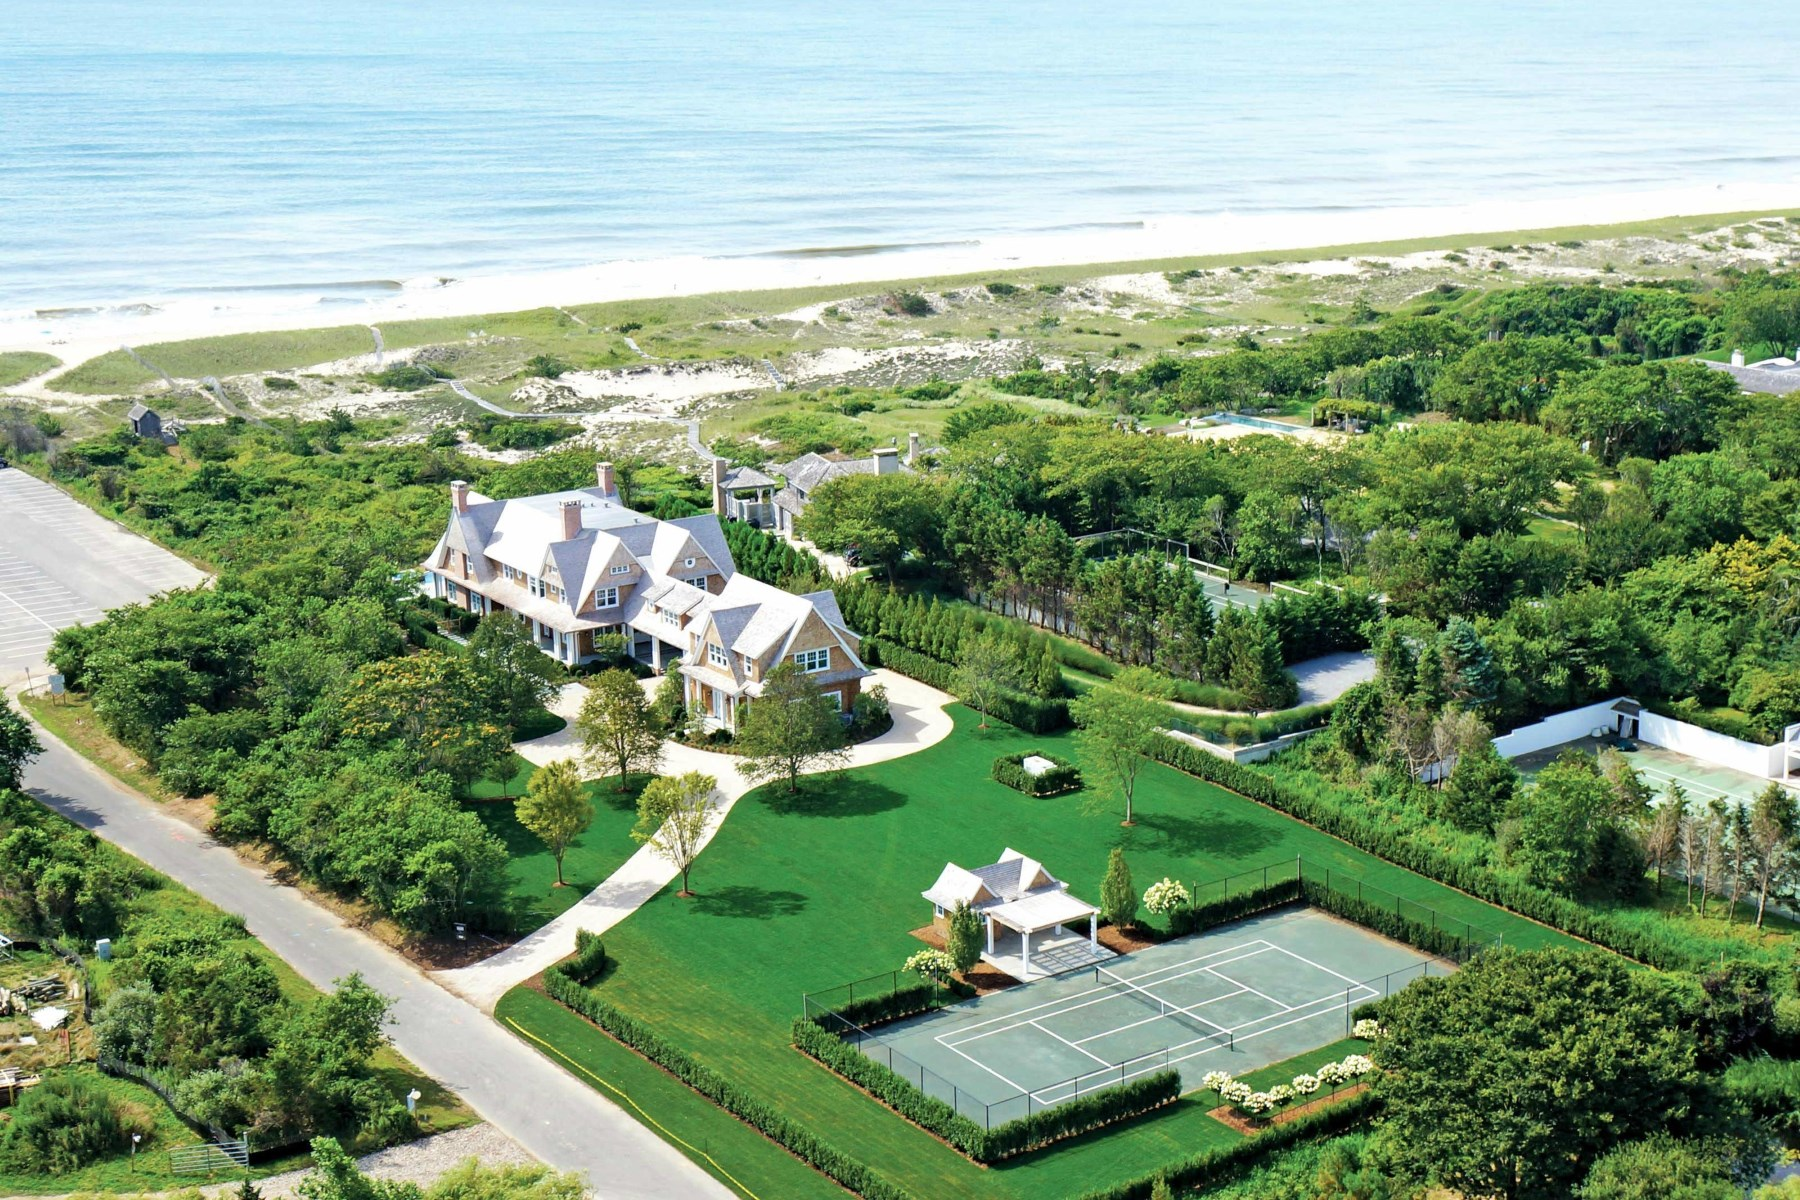 Частный односемейный дом для того Продажа на East Hampton Oceanfront, Pool and Tennis 38 Two Mile Hollow Road East Hampton Village, East Hampton, Нью-Йорк 11937 Соединенные Штаты